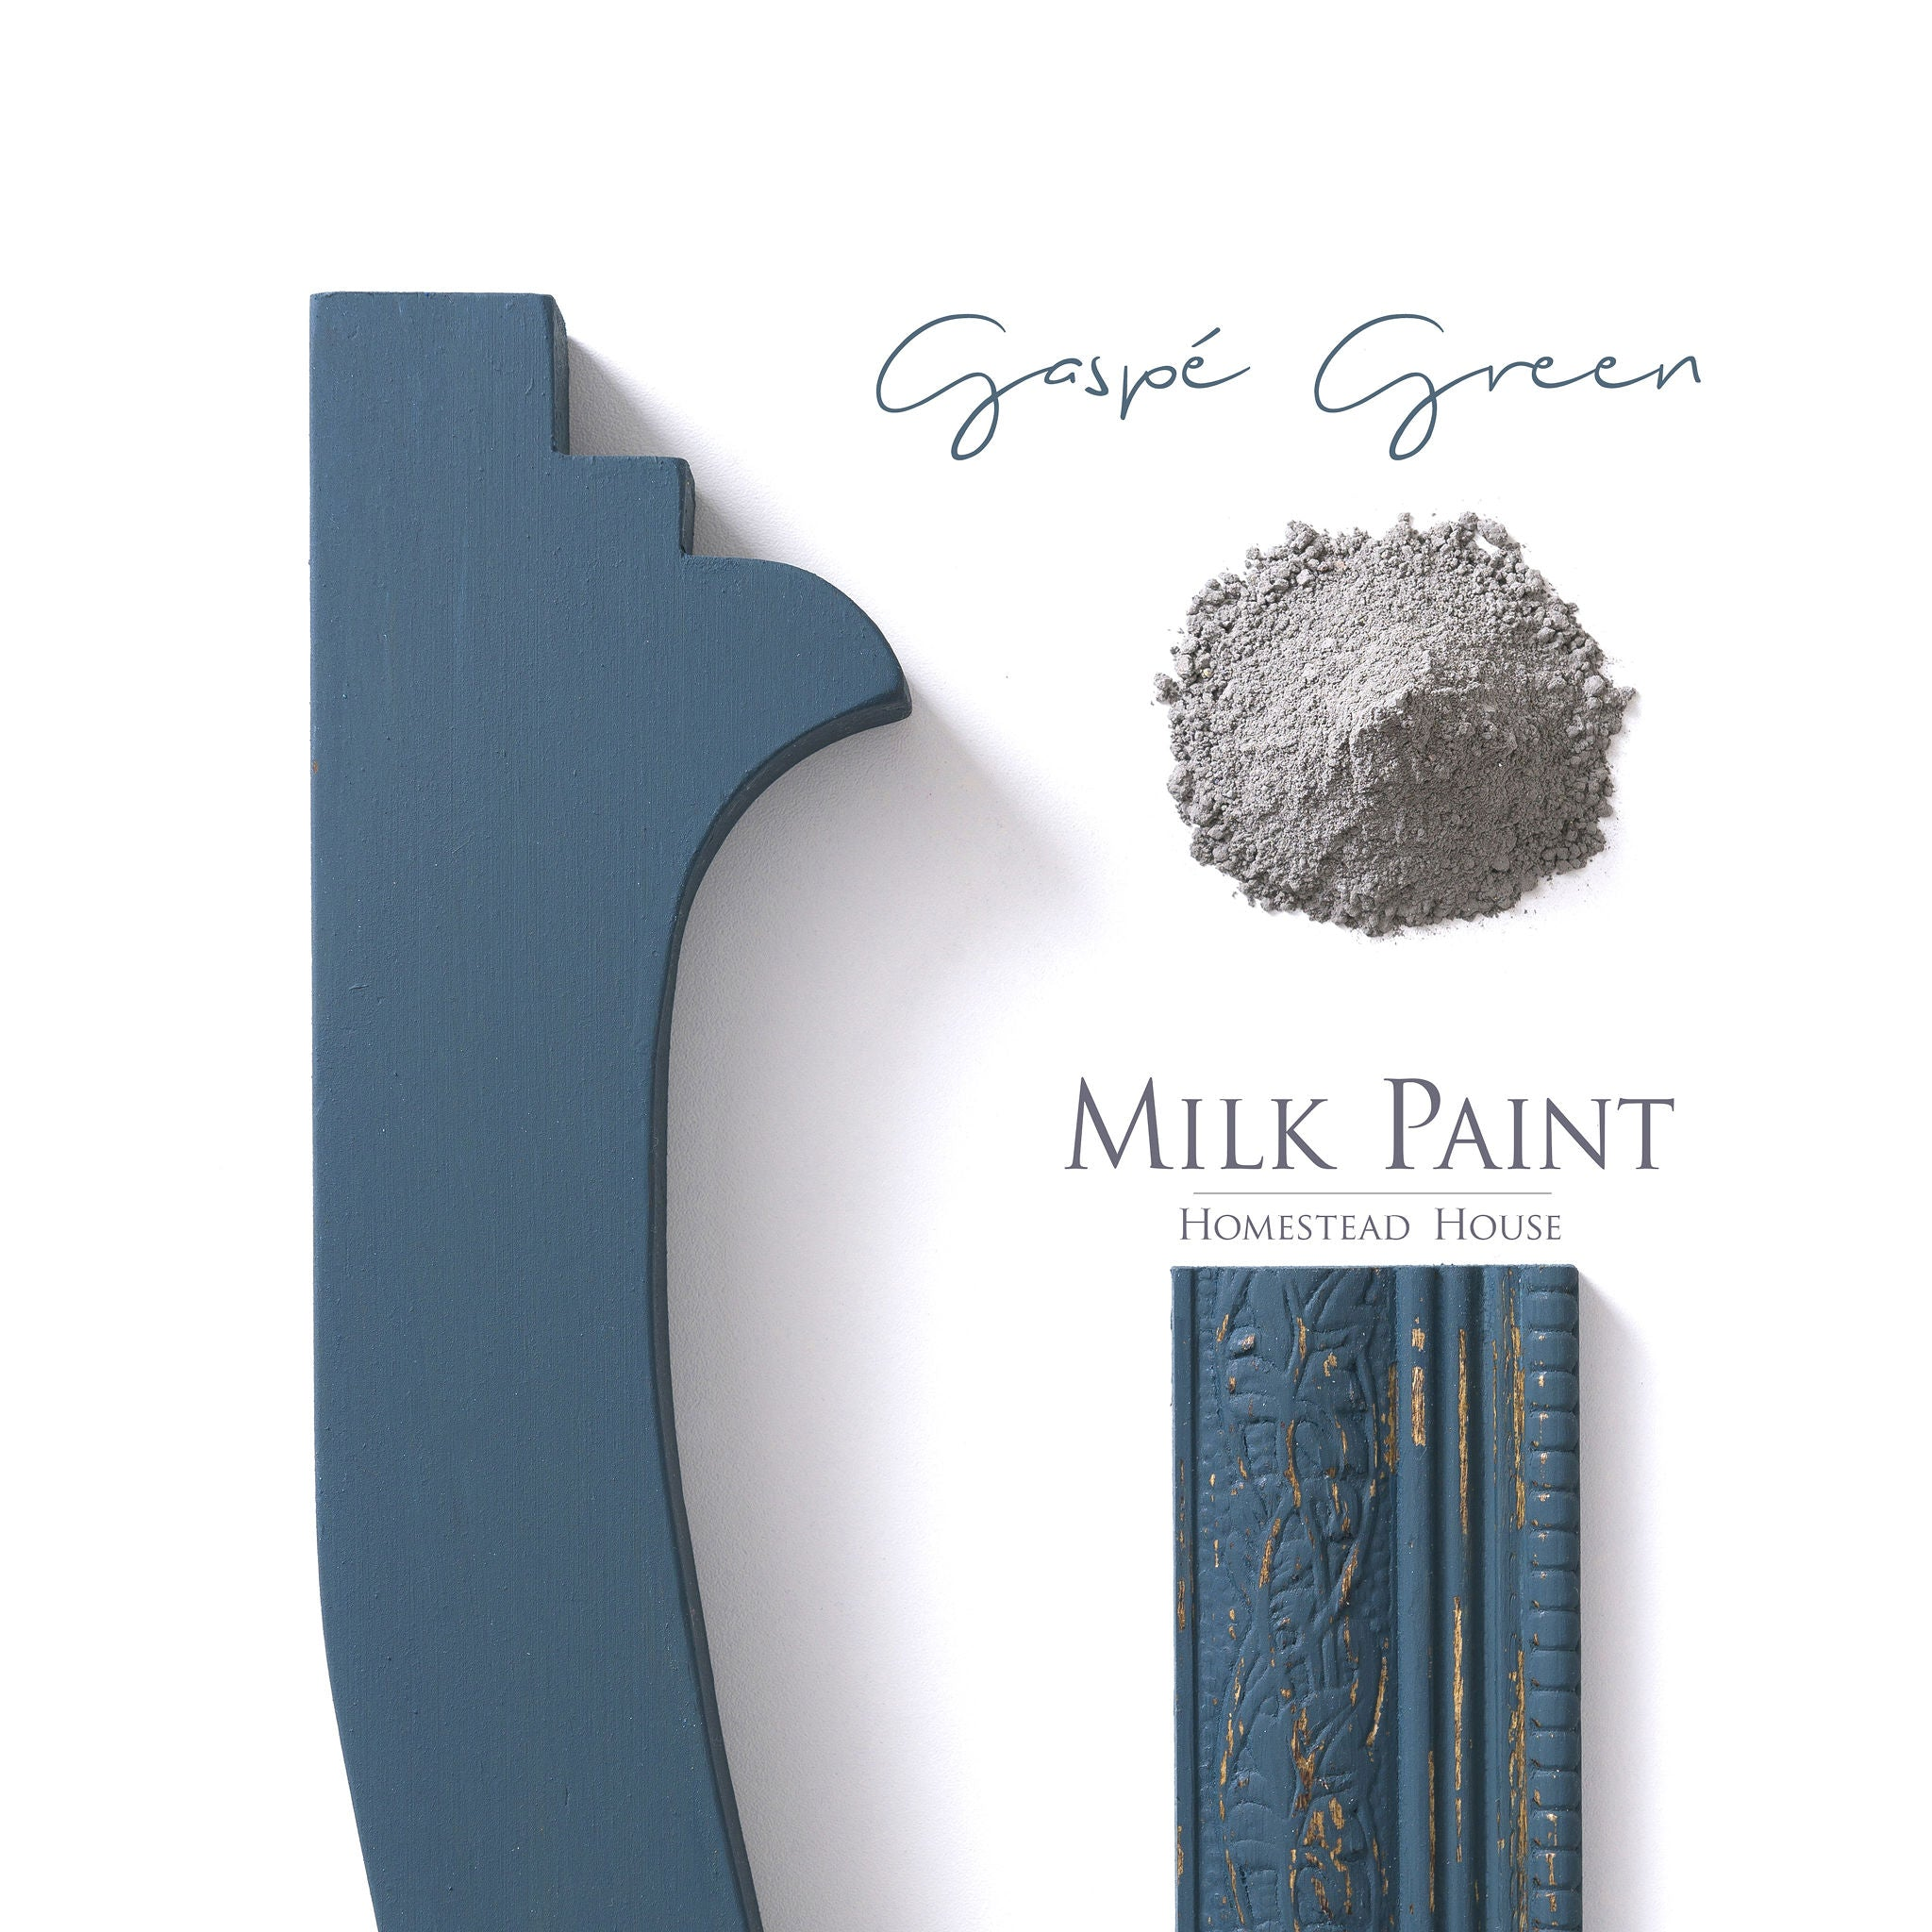 Gaspé Green Homestead House Milk Paint @ The Painted Heirloom